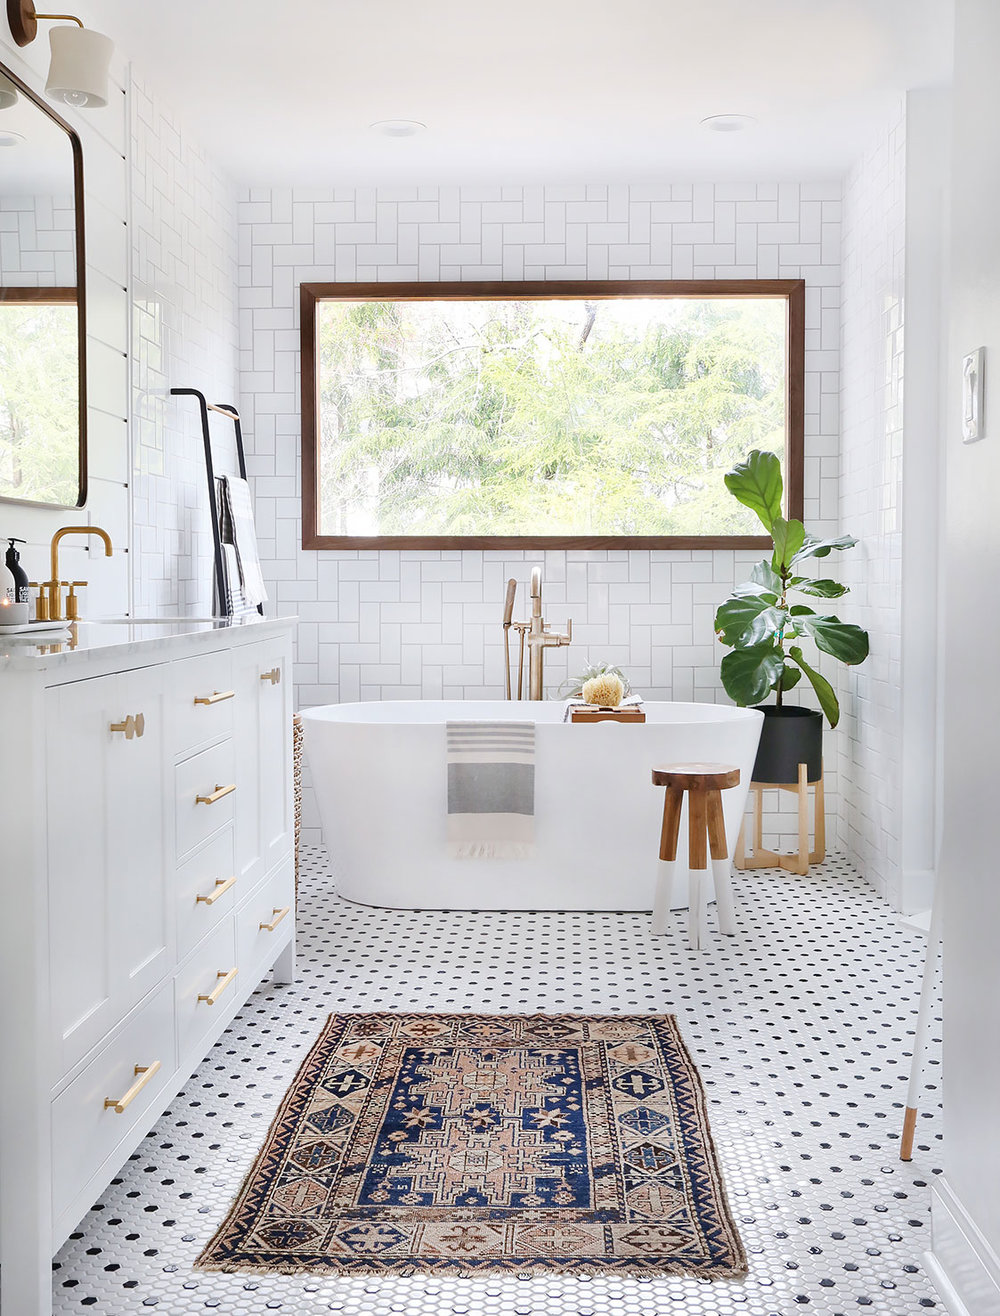 Bathroom Remodeling | Tile Experts - Hirst Construction